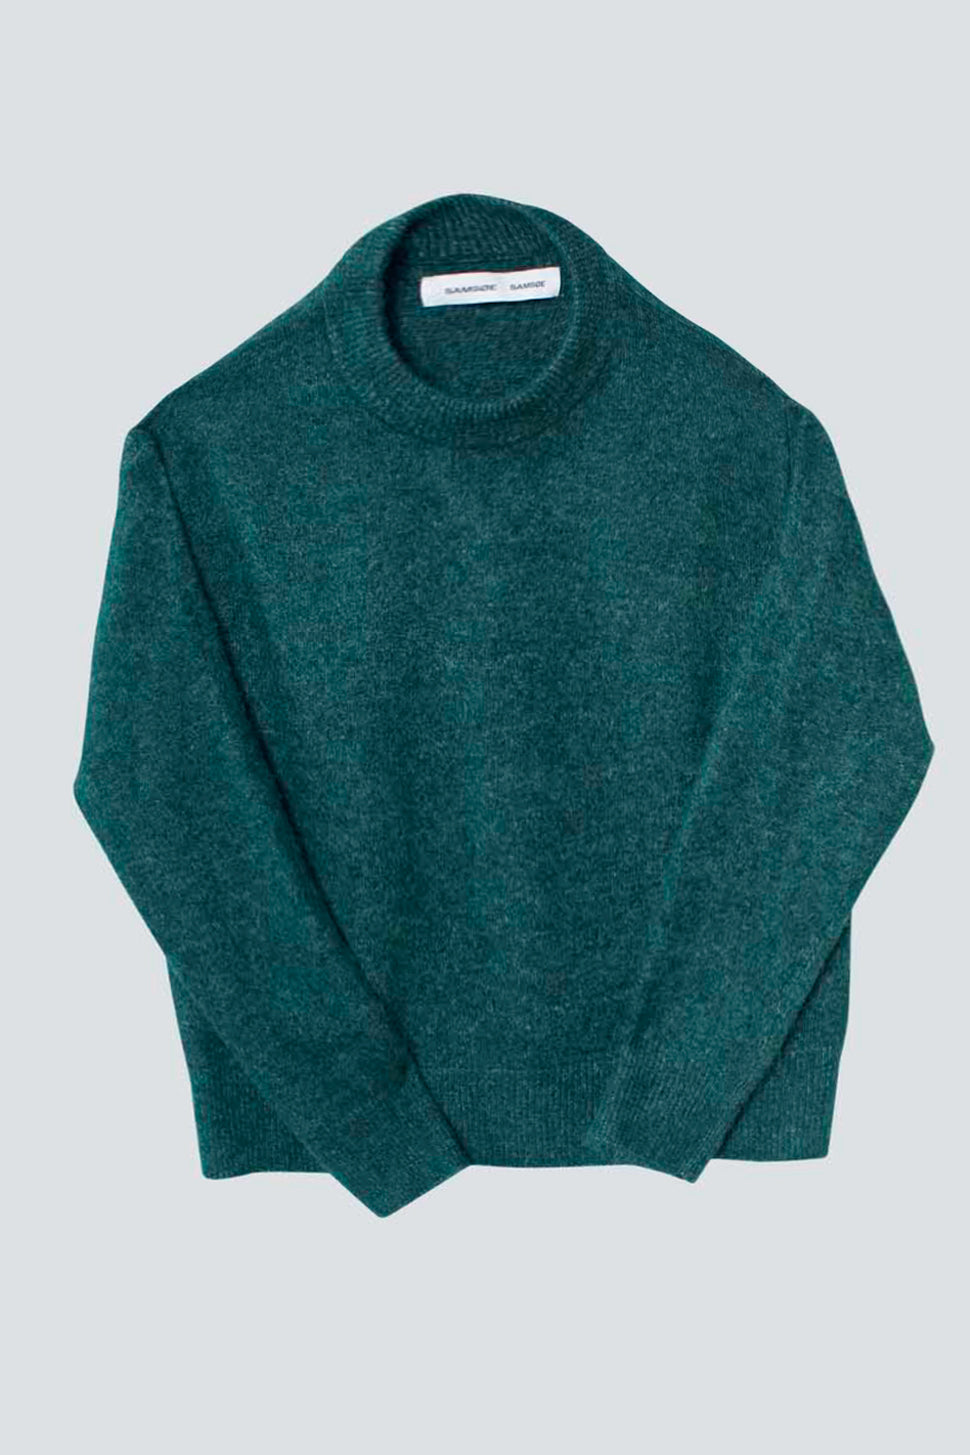 Anour Sweater 1